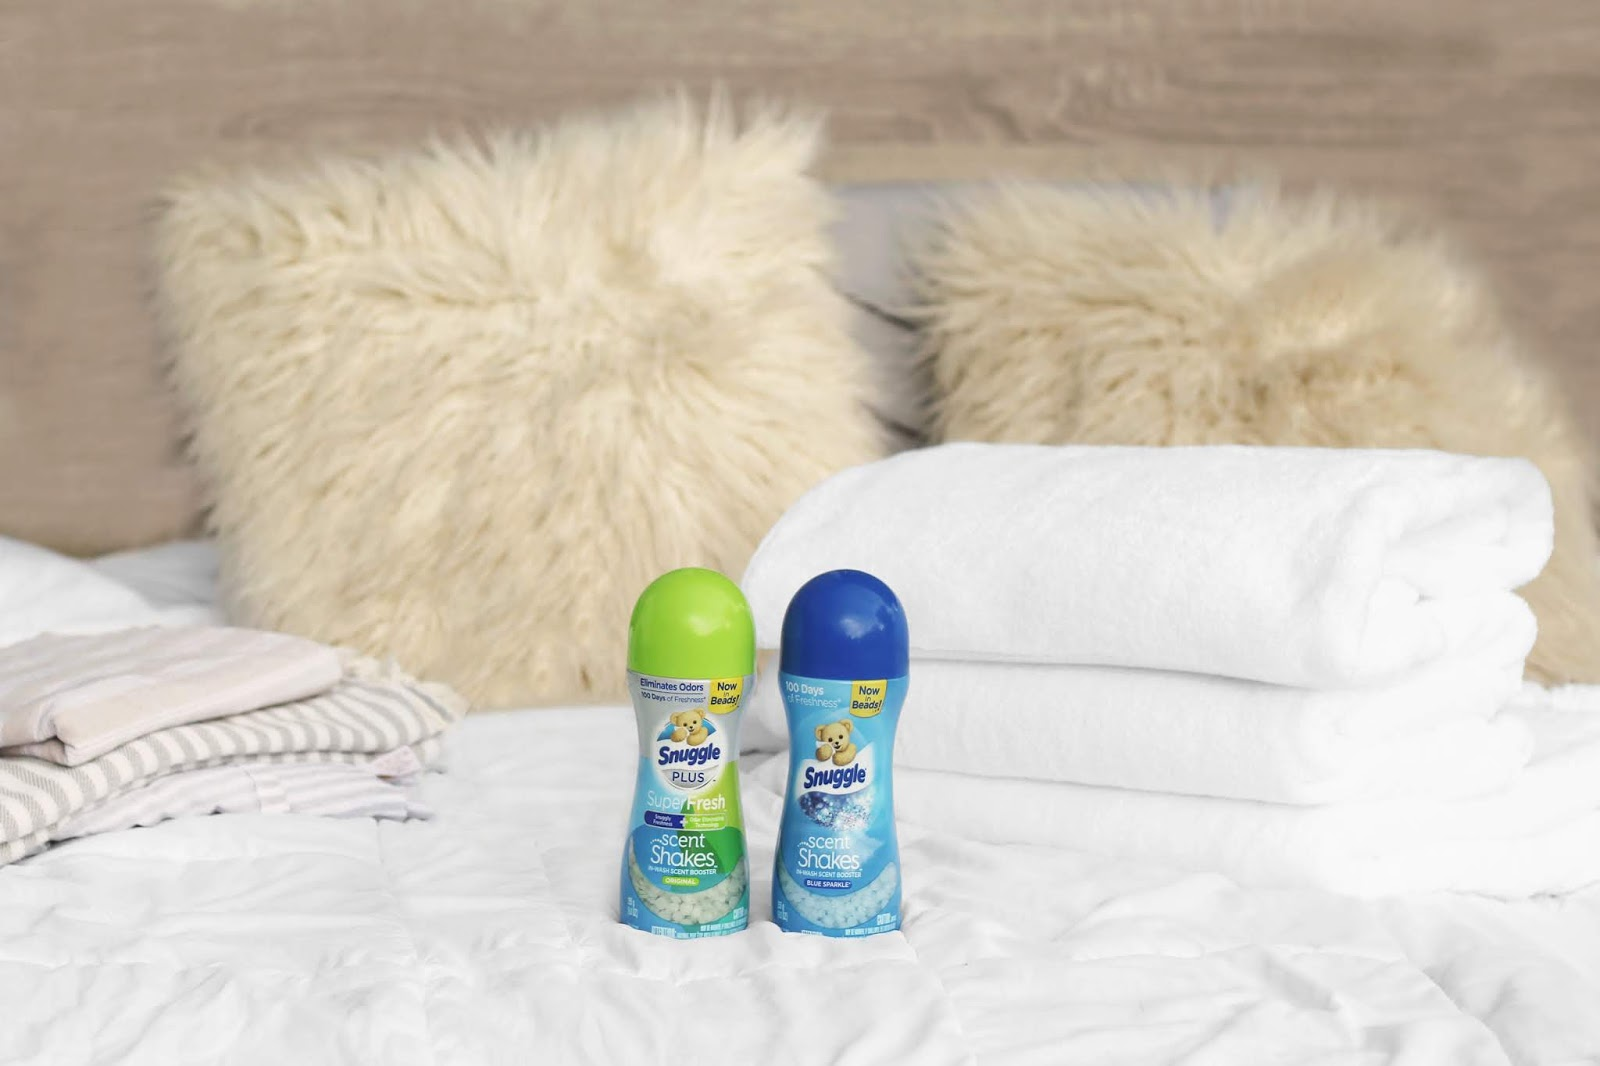 Snuggle Scent Shakes, Snuggle Laundry Products, Doing Laundry at home